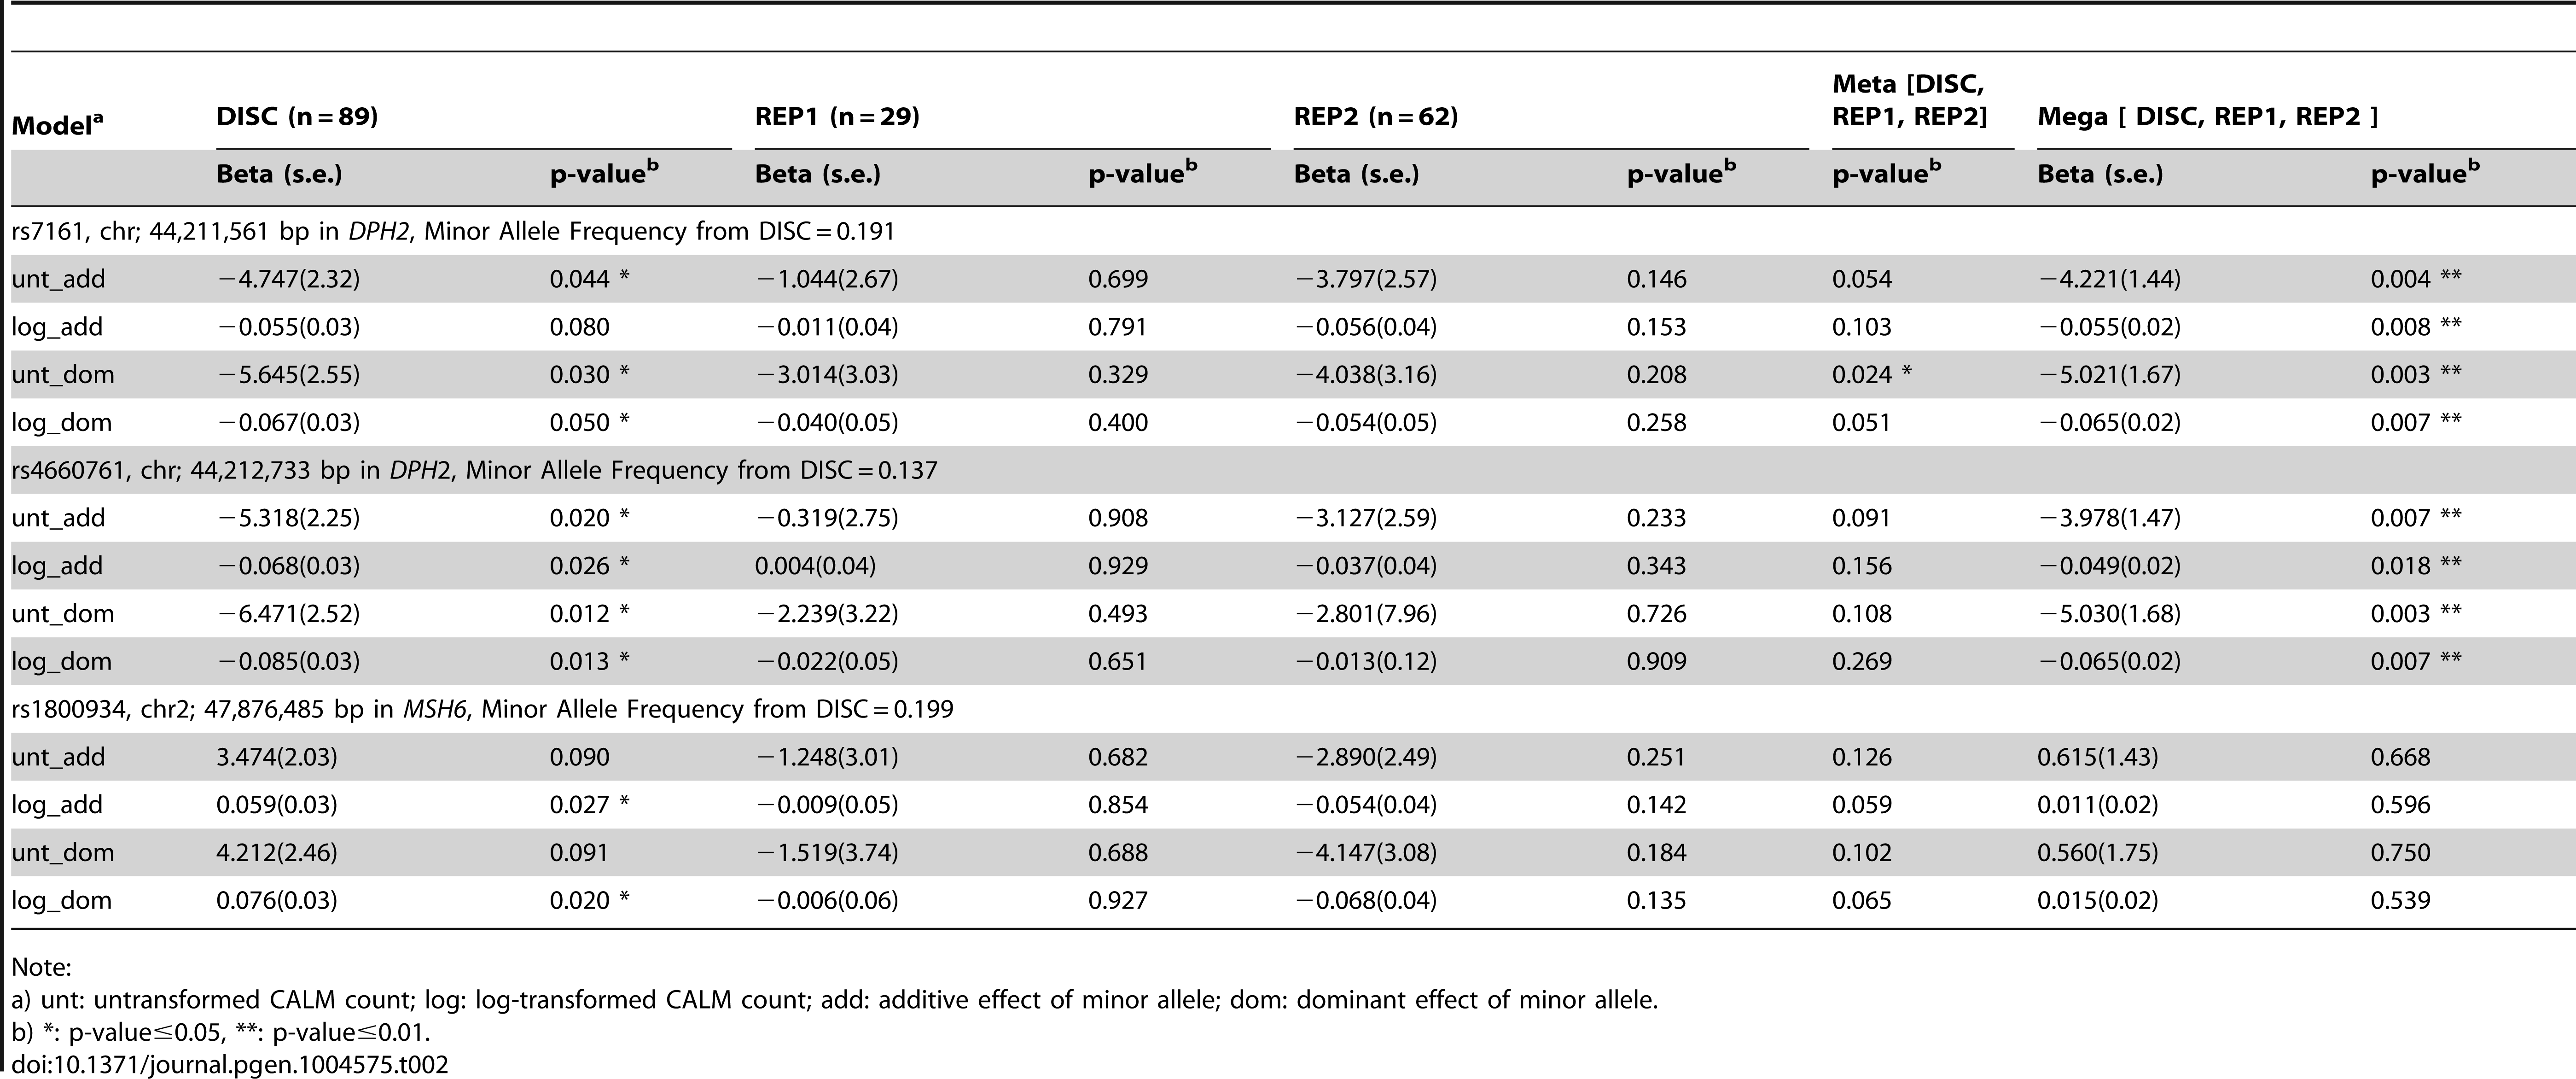 Significance of association of SNVs with CALM count by simple linear regression adjusting for age and sex using self-reported European-American samples.